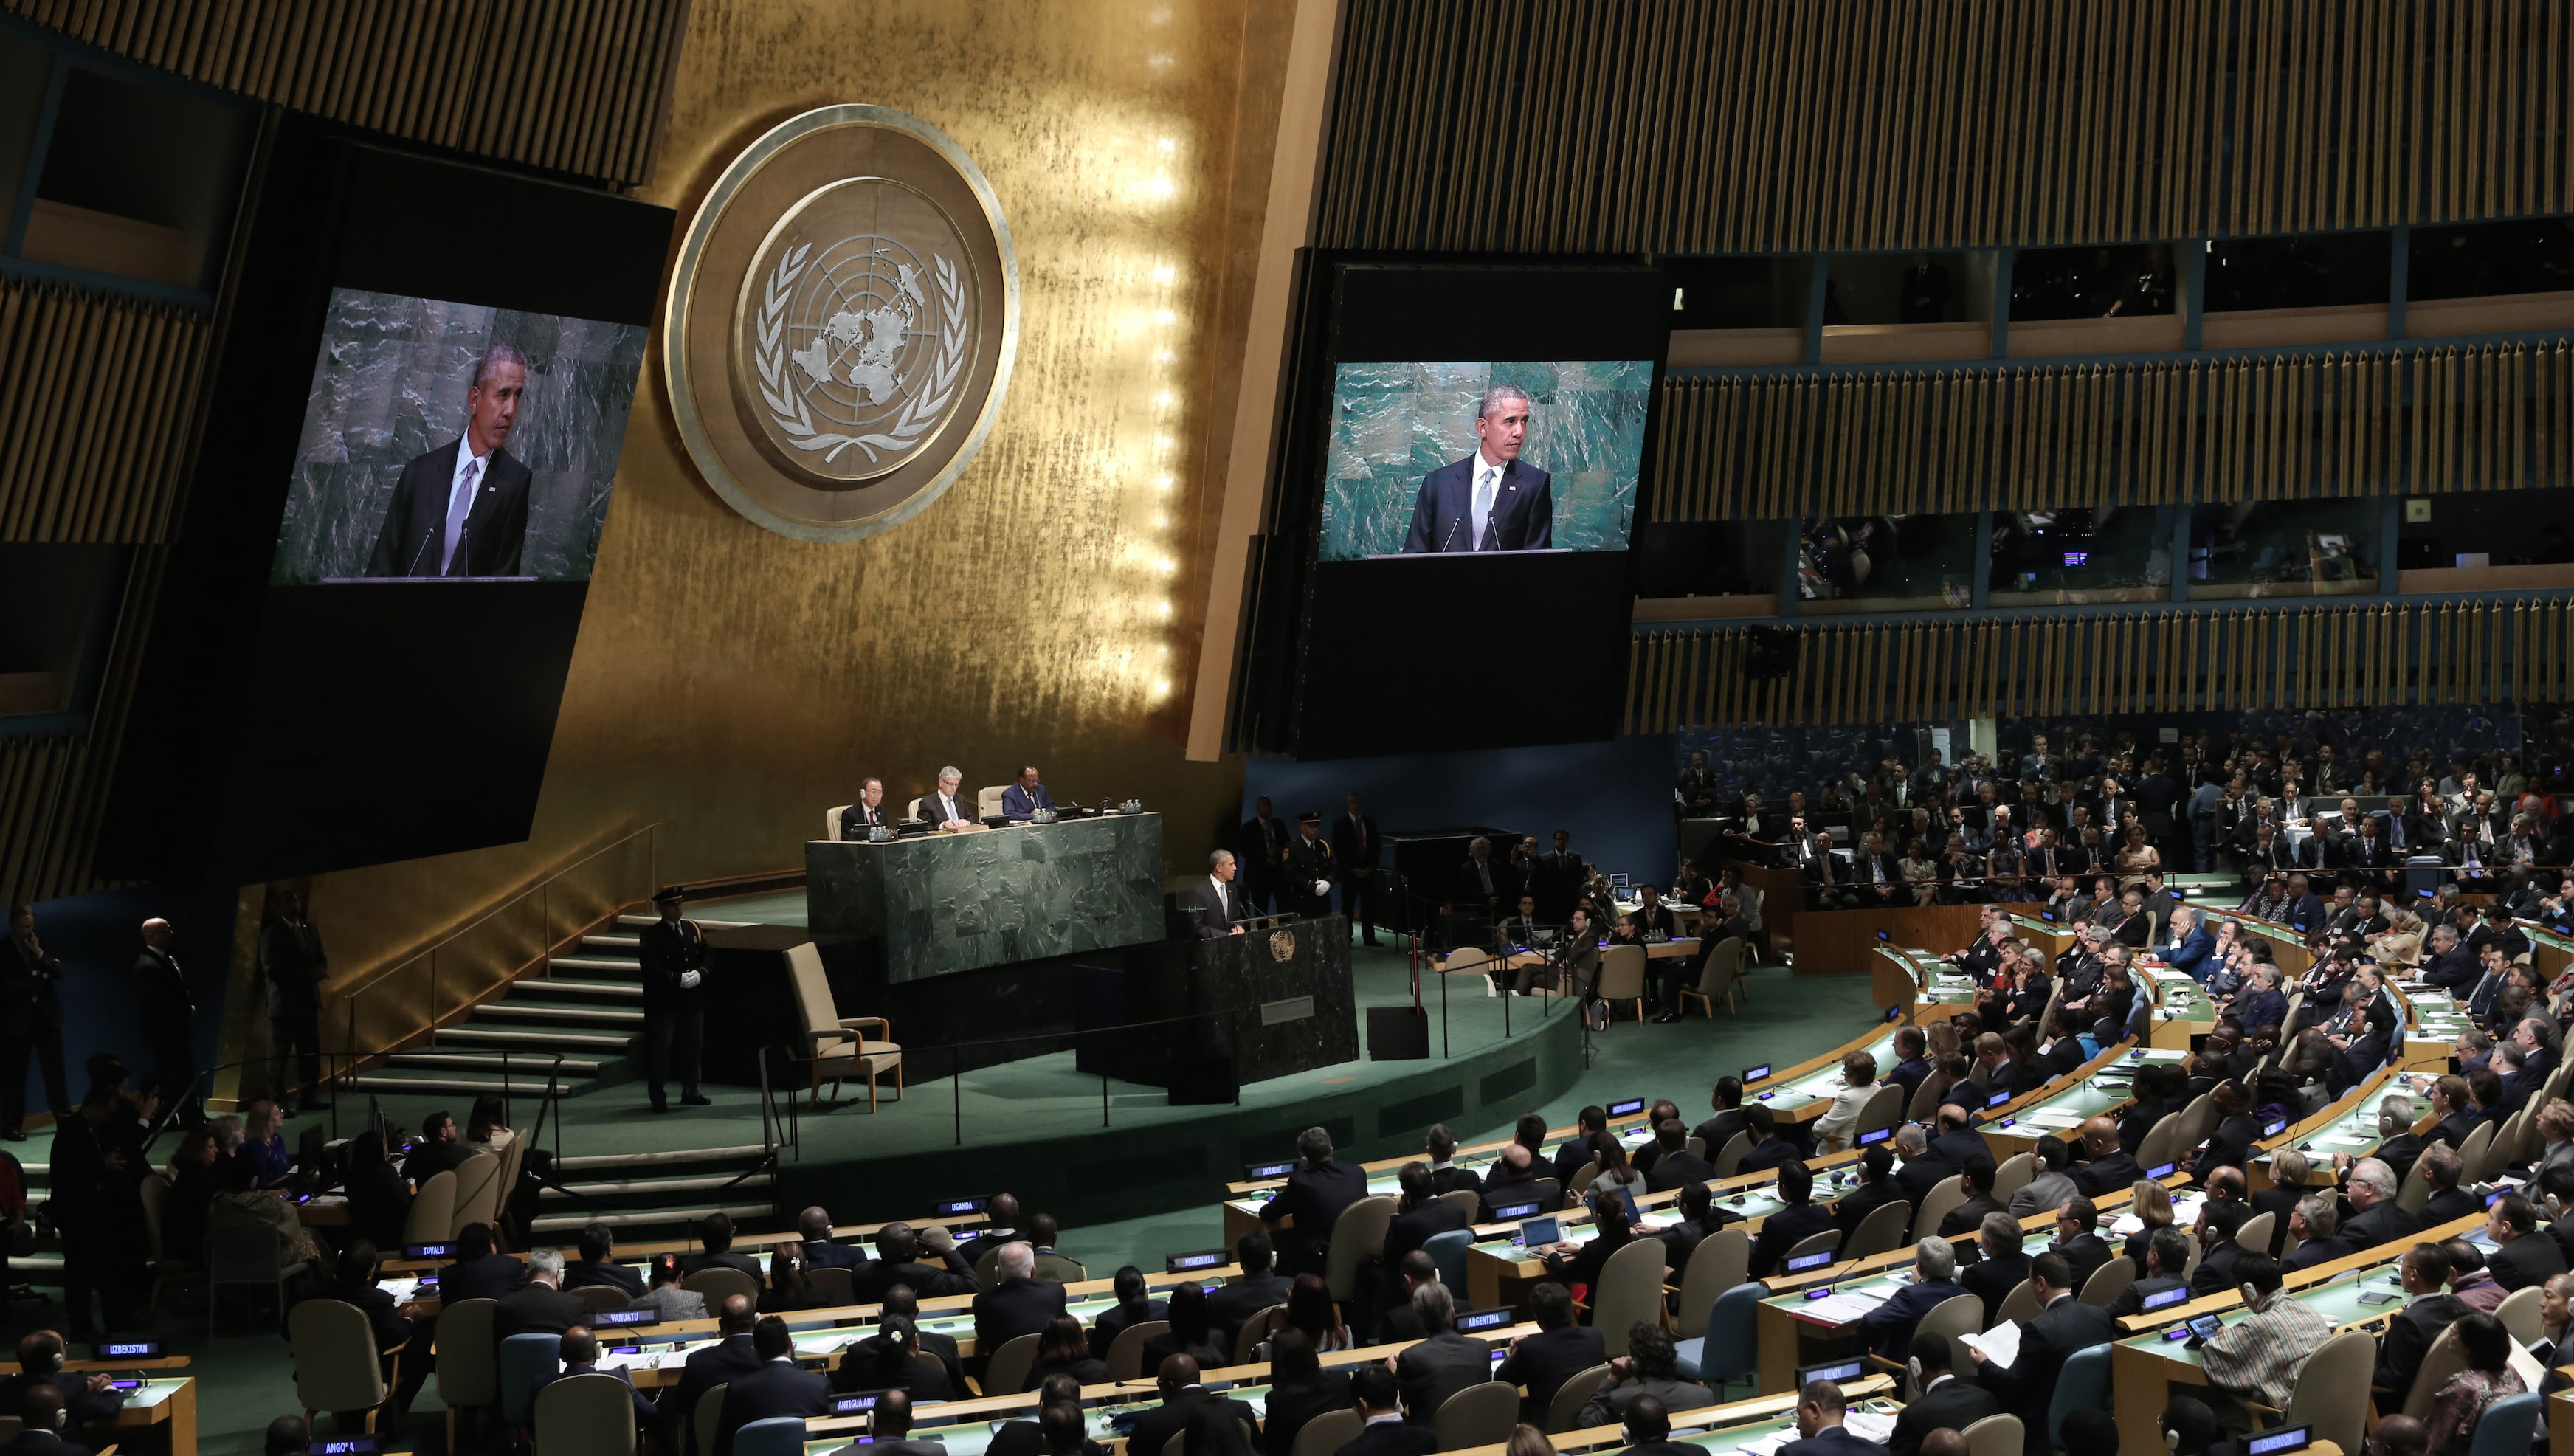 U.S. President Barack Obama addresses attendees during the 70th session of the United Nations General Assembly at the U.N. Headquarters in New York